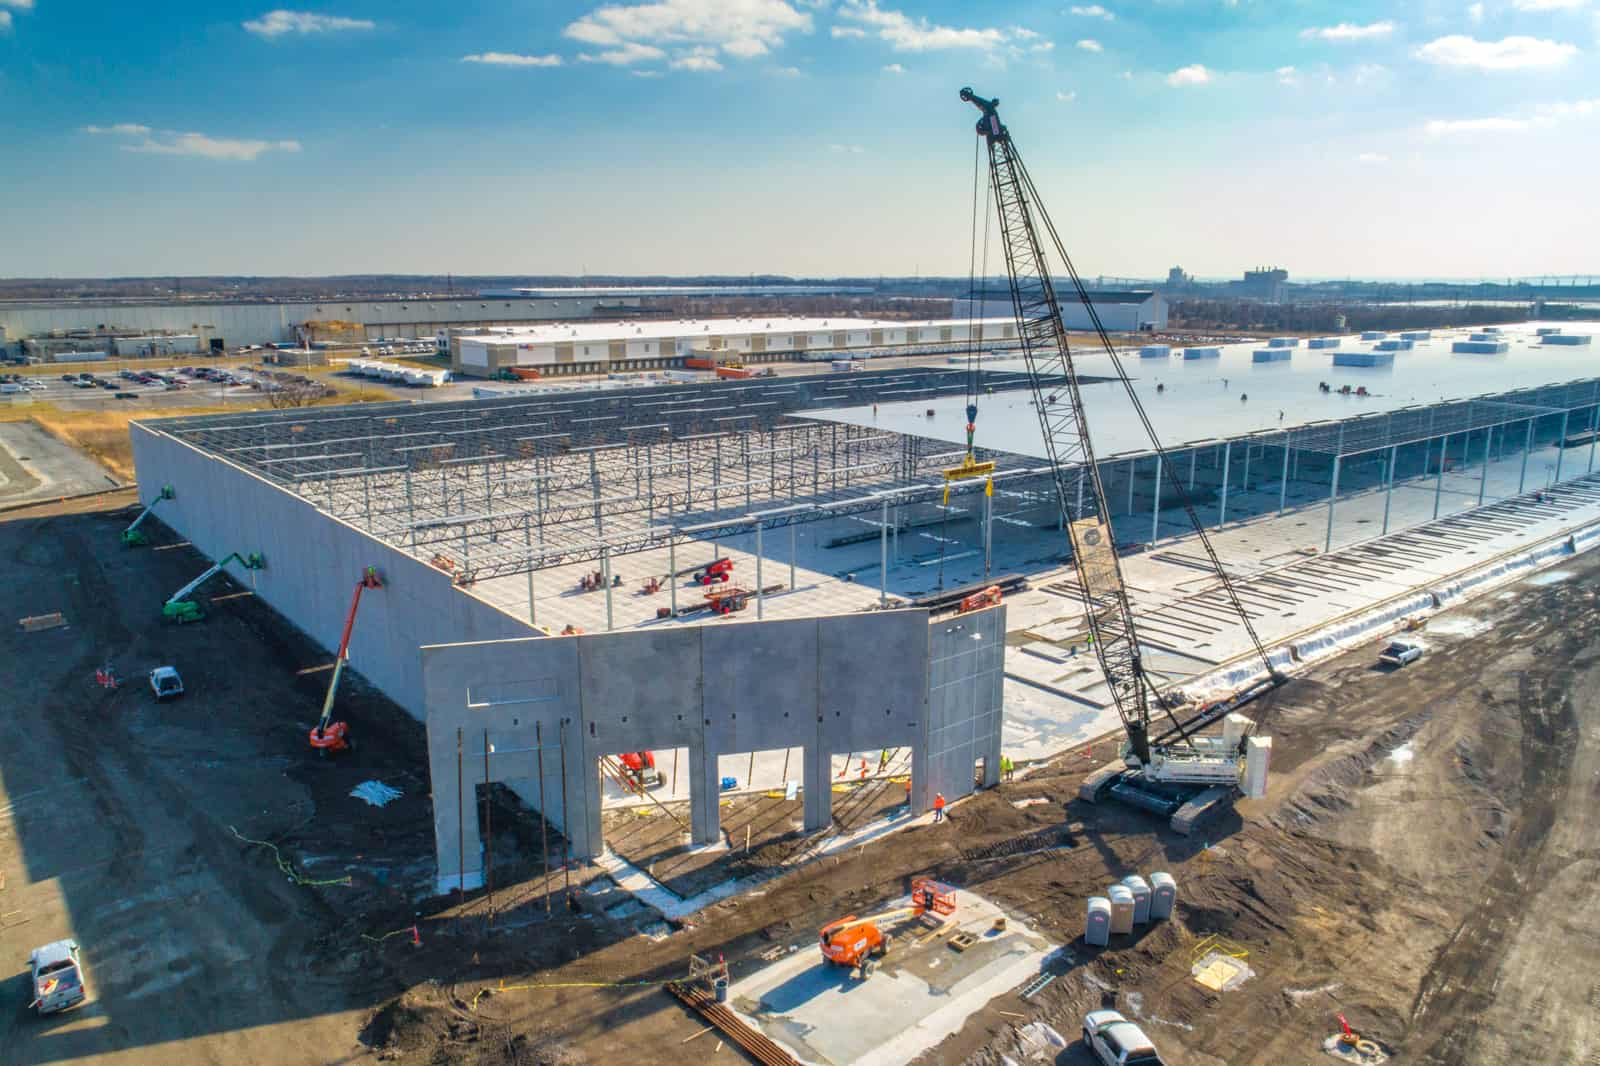 drone photo of crane installing new wall of massive commercial building in Maryland